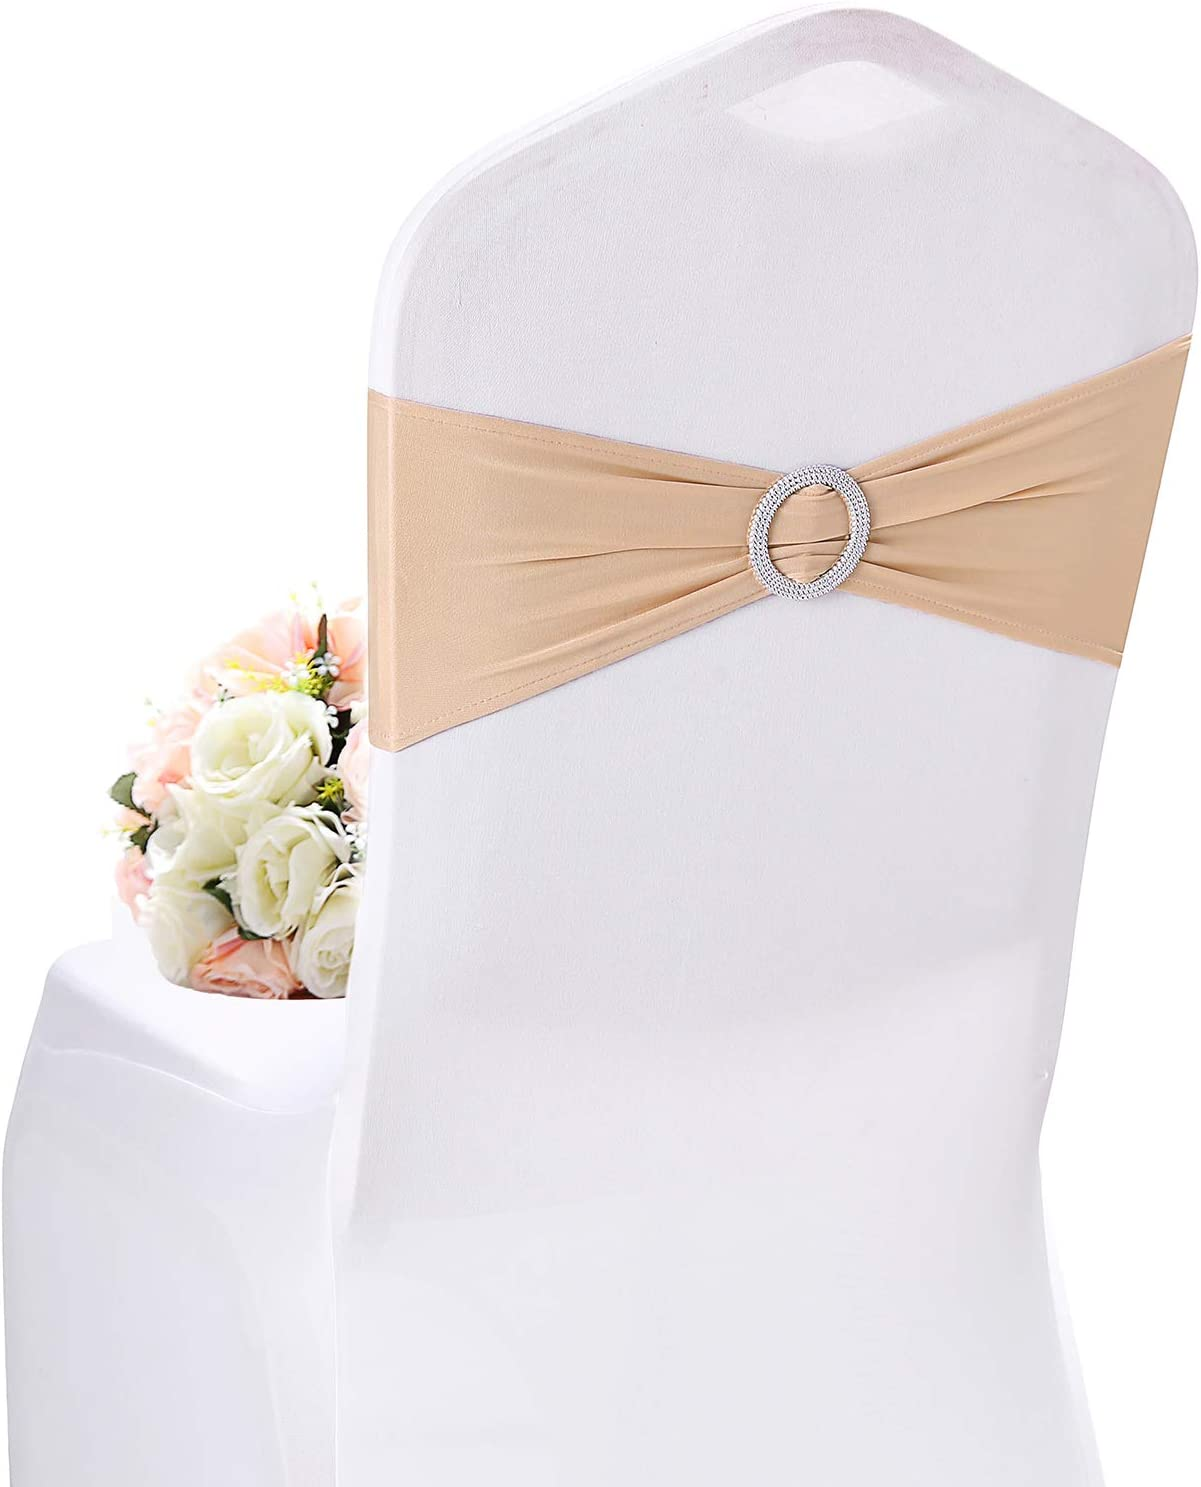 10pcs Spandex Stretch Chair Back Band Cover With Buckle Wedding Party Decor New